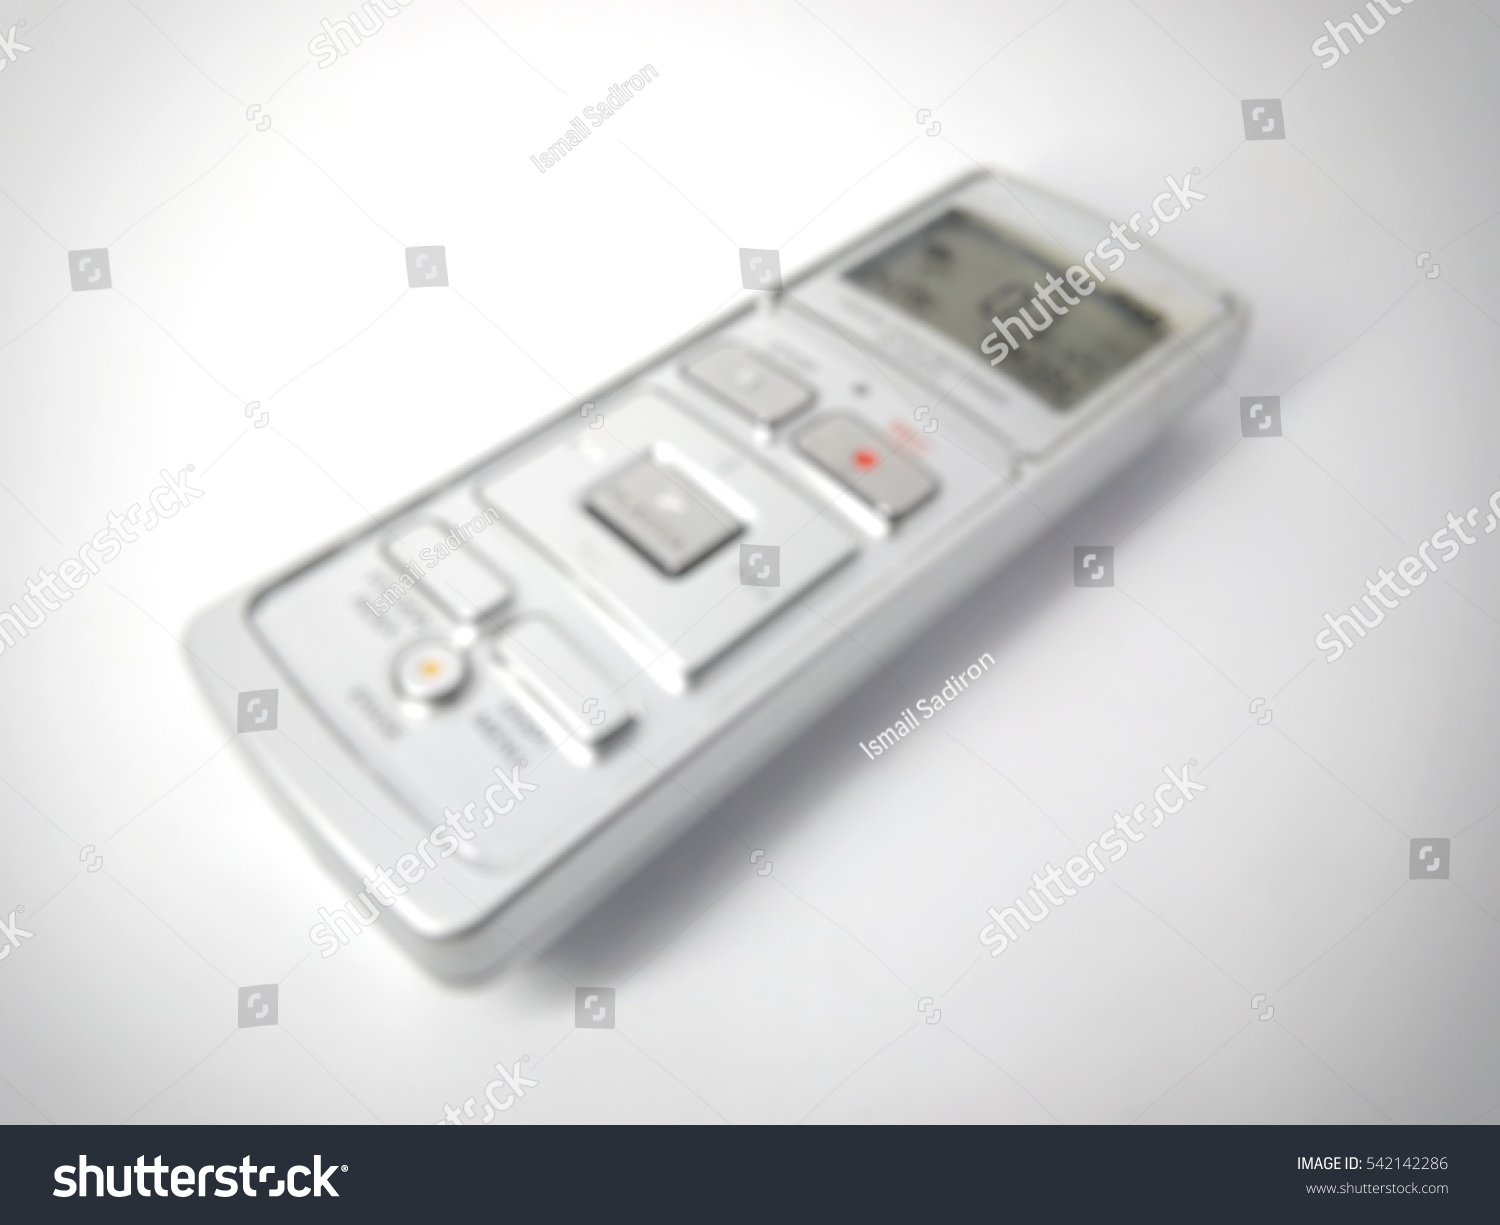 Digital Clinical Thermometer Ez Canvas Telephone Voice Recorder Circuit Is As Shown In The Picture It